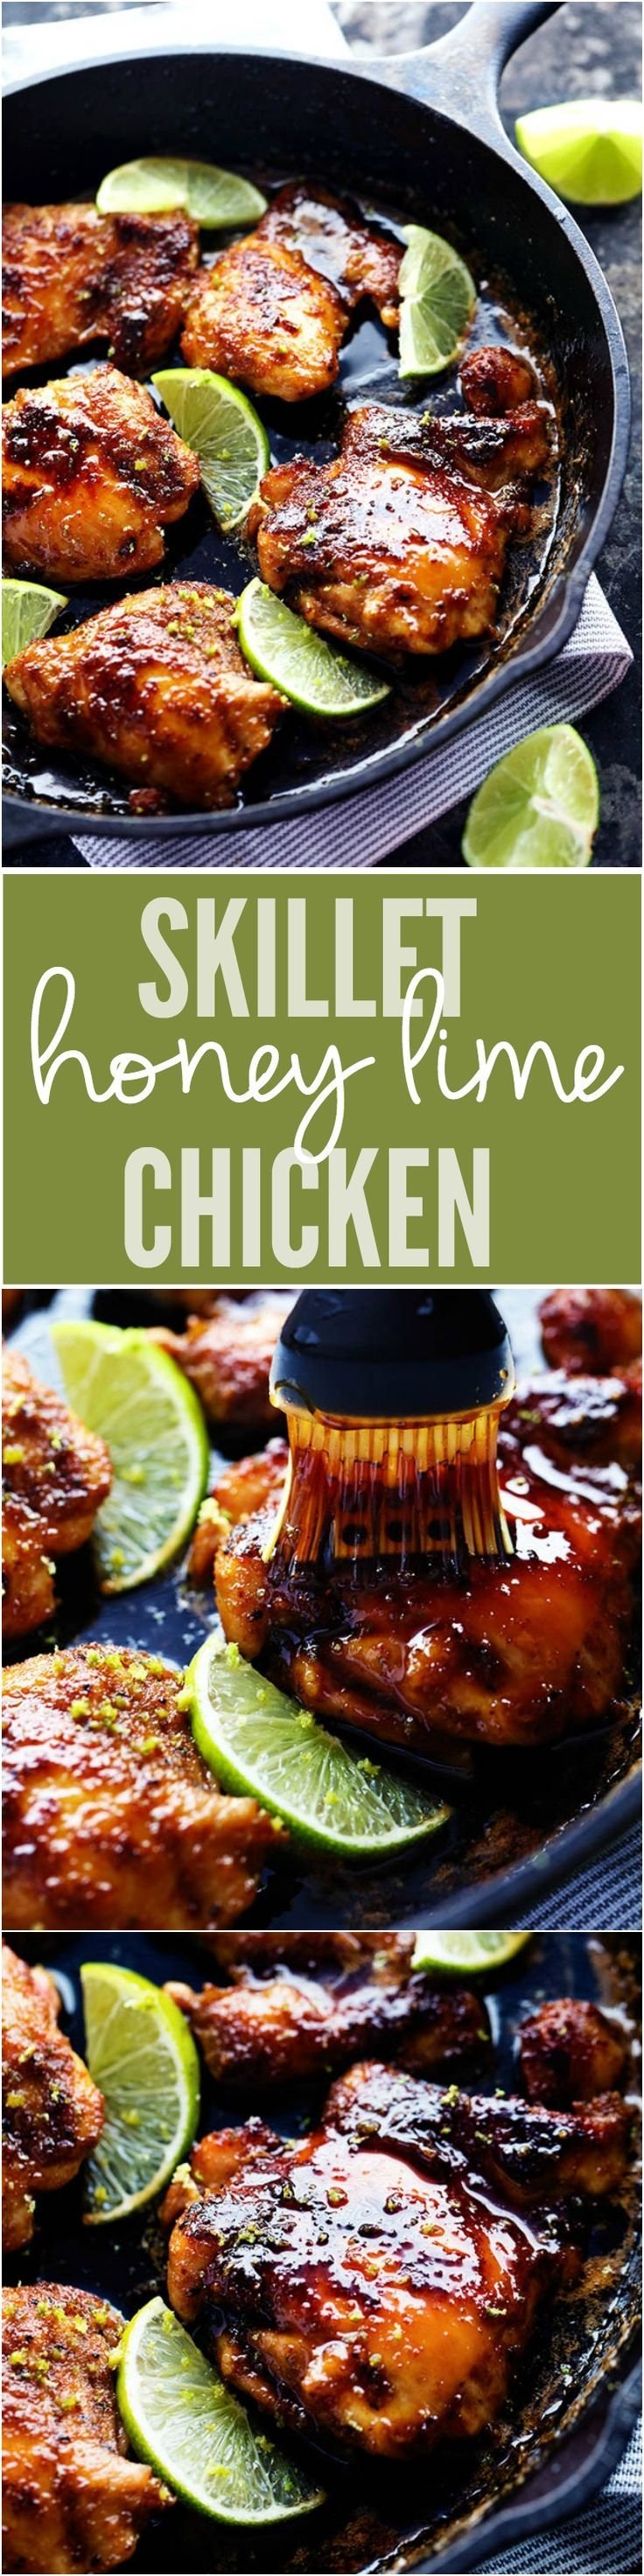 Skillet Honey Lime Chicken ~ delicious spice-rubbed chicken is cooked to tender and juicy perfection and glazed with the most amazing honey lime sauce!